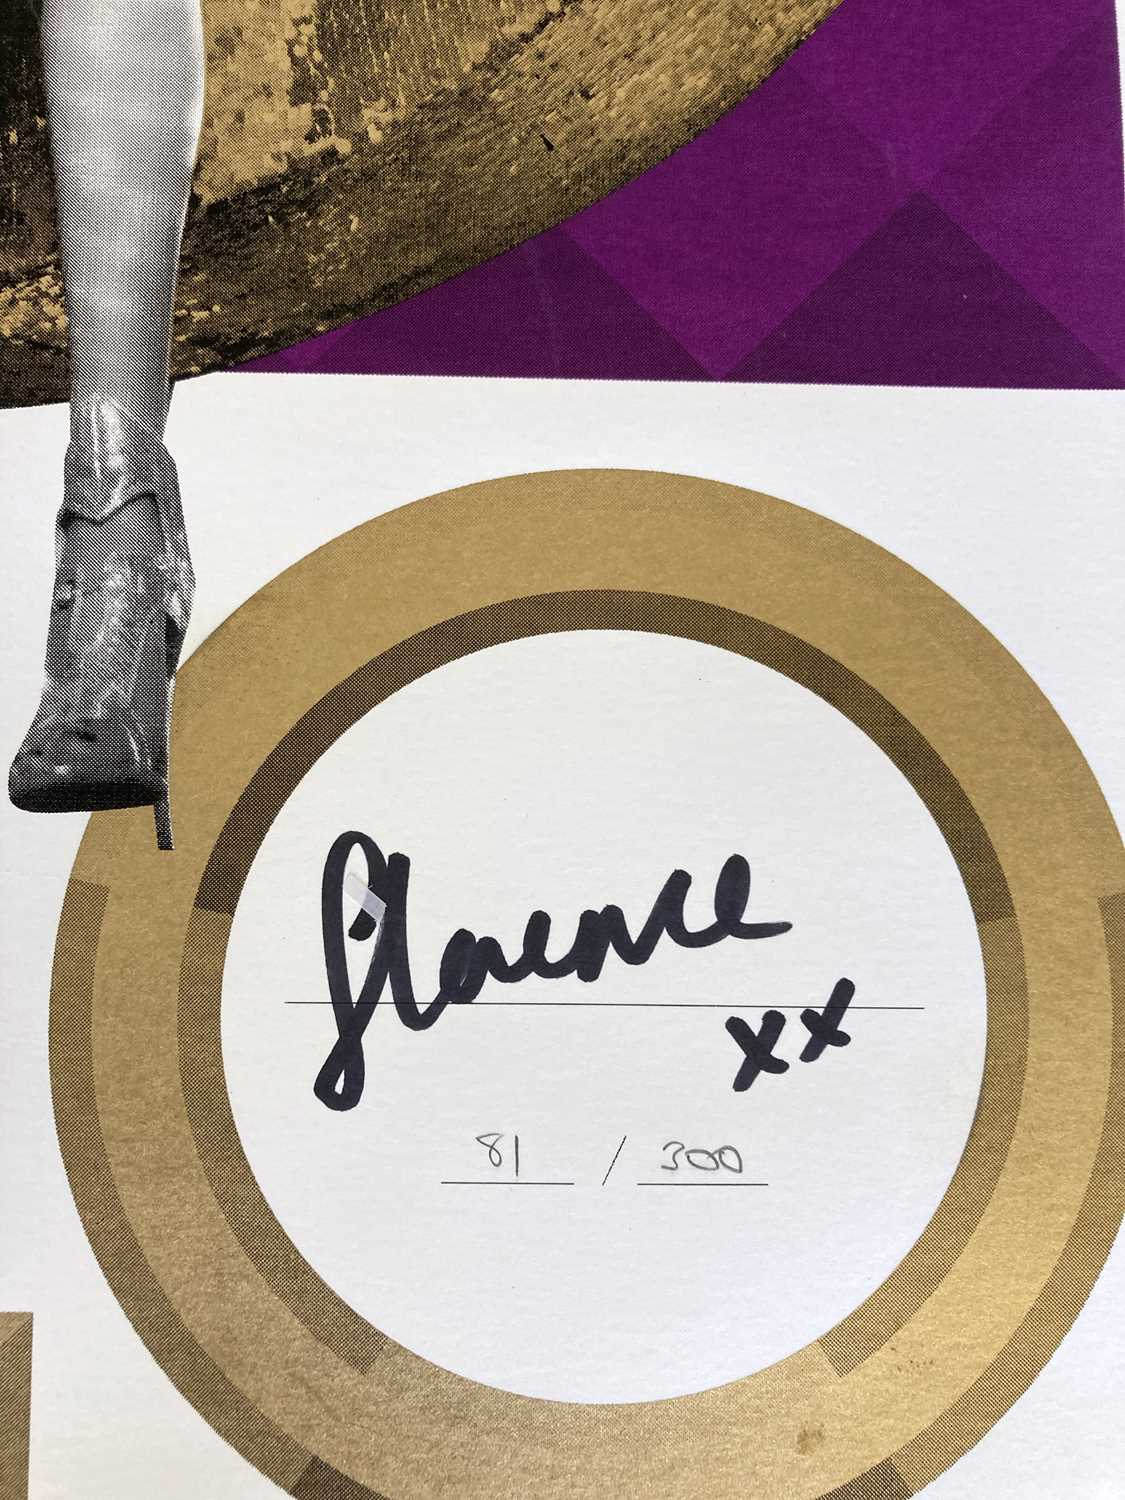 FLORENCE AND THE MACHINE LIMITED EDITION POSTERS. - Image 3 of 4